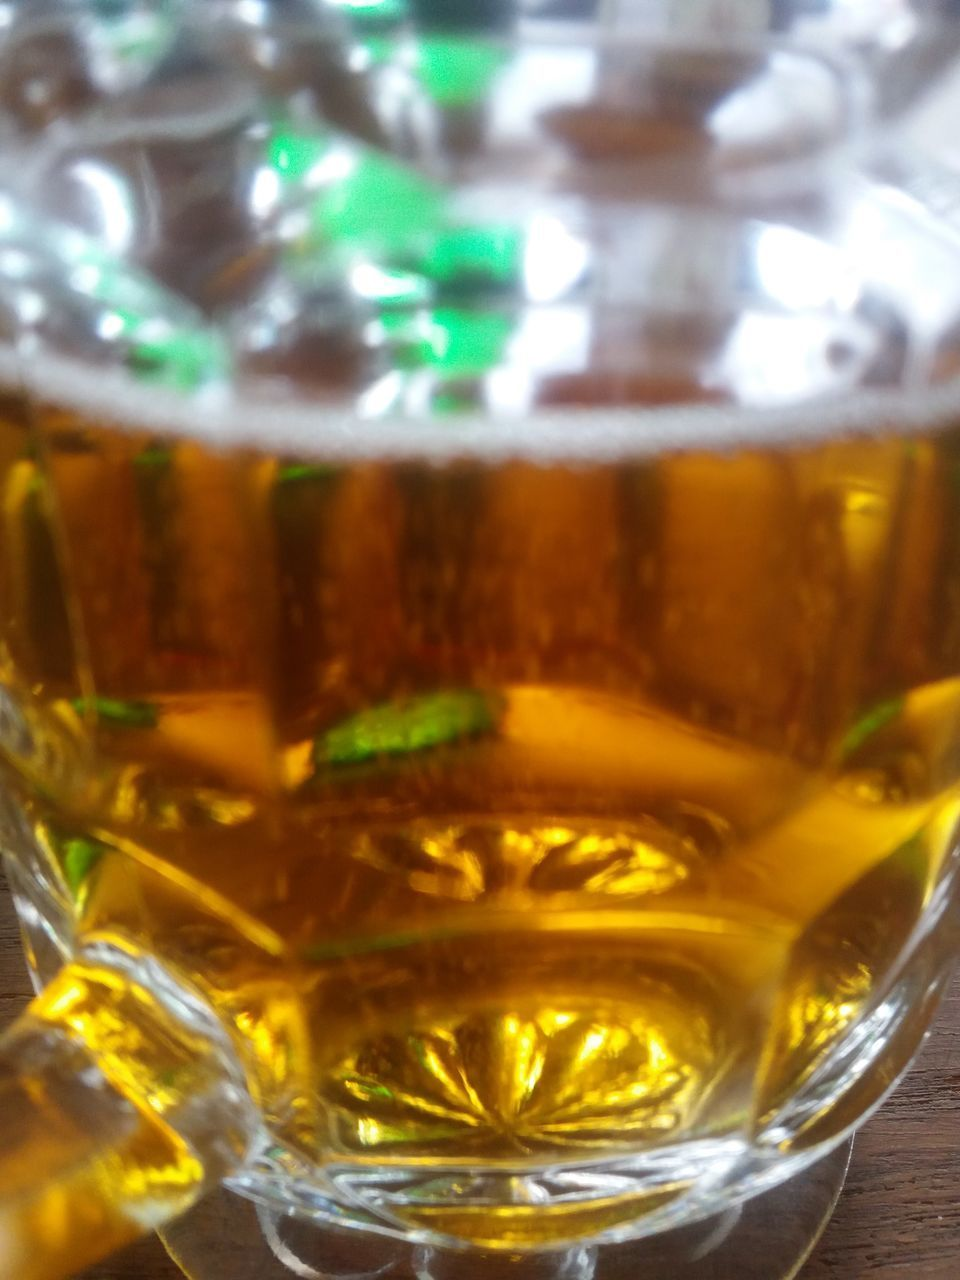 food and drink, drink, alcohol, drinking glass, refreshment, beer - alcohol, close-up, gold colored, no people, beer glass, beer, freshness, whiskey, day